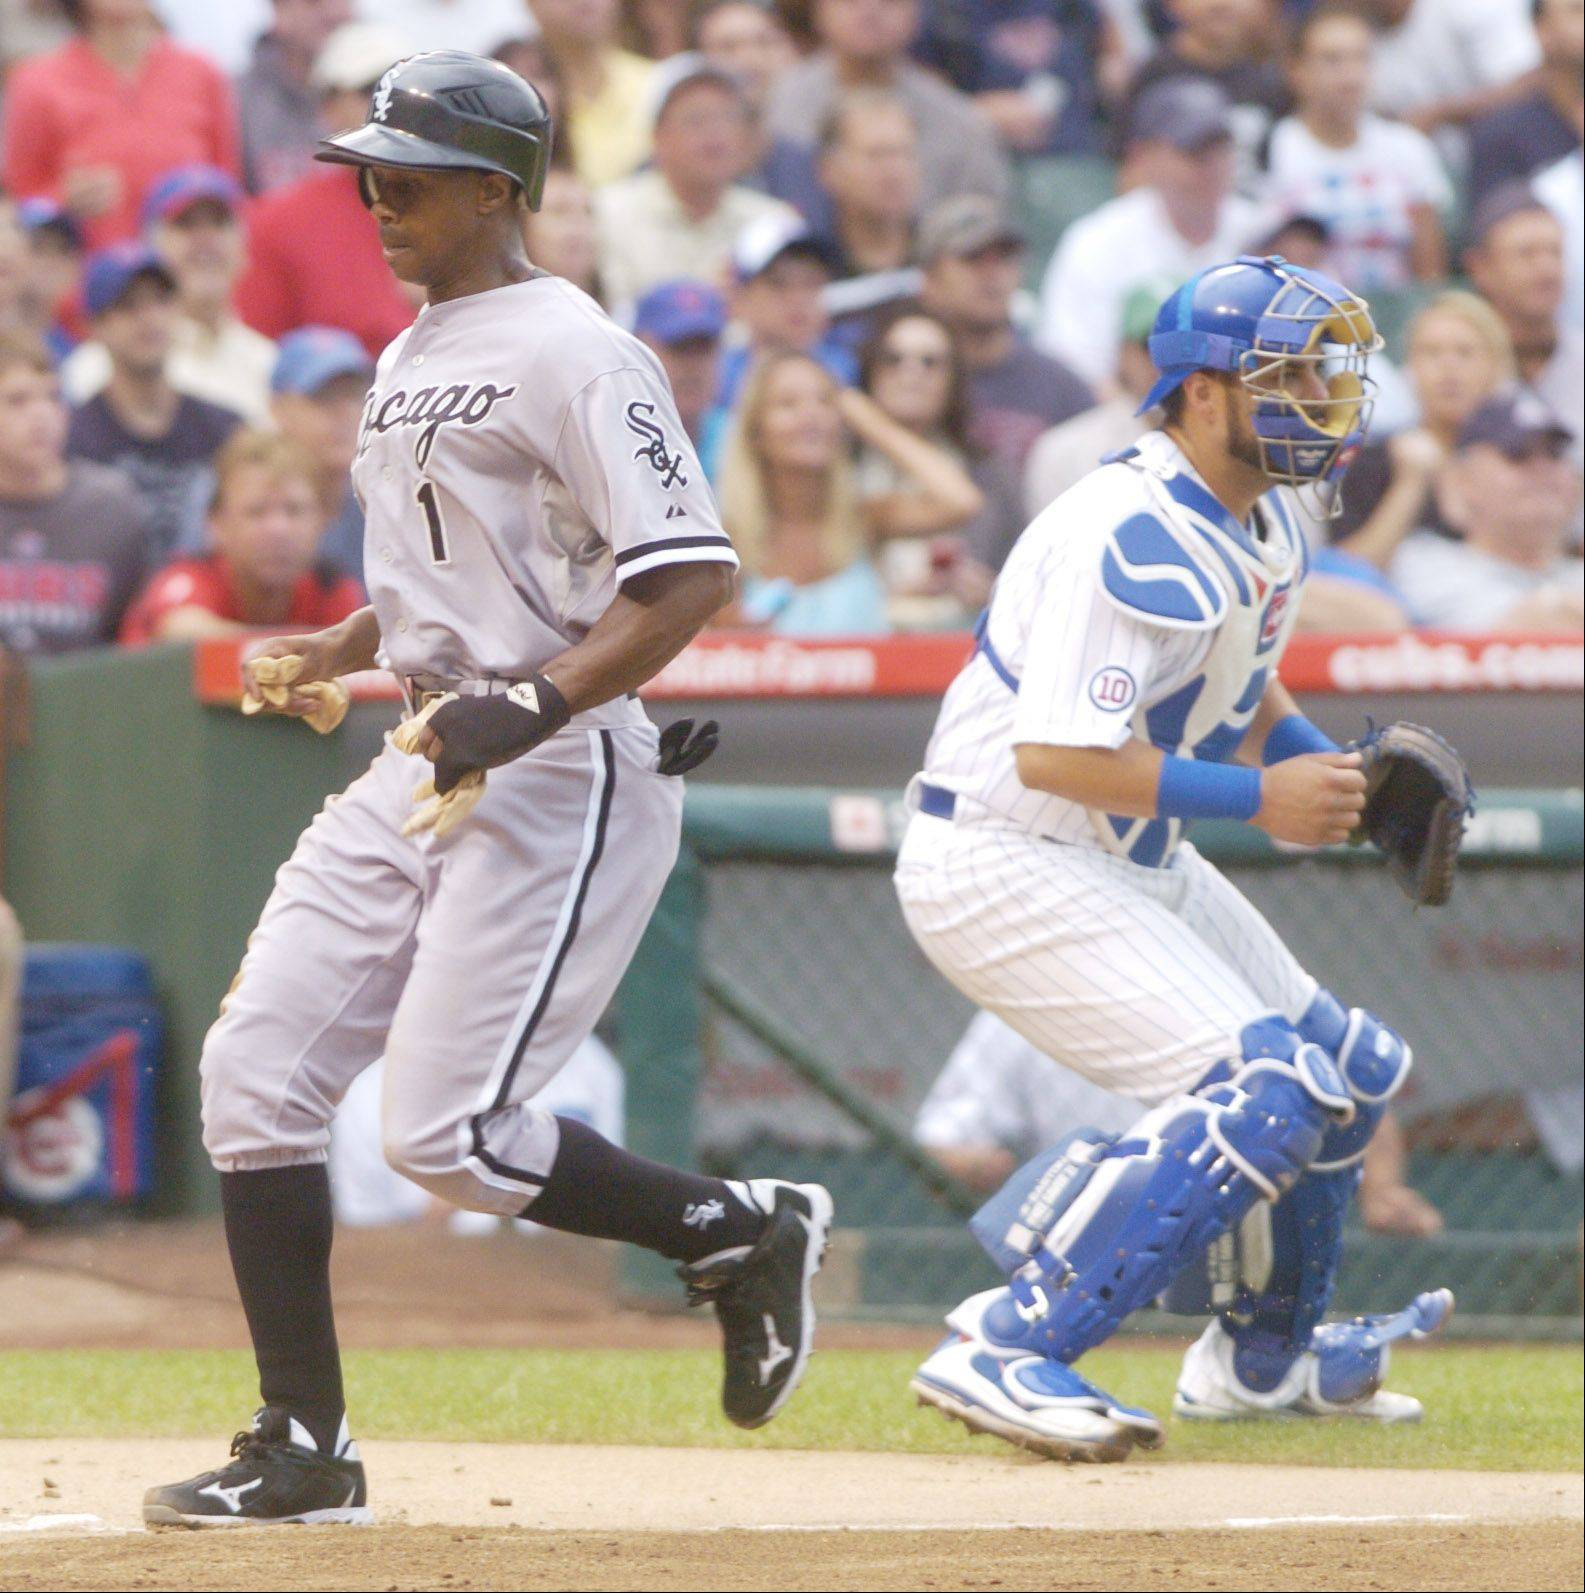 Juan Pierre of the White Sox scores during the first inning against the Cubs.